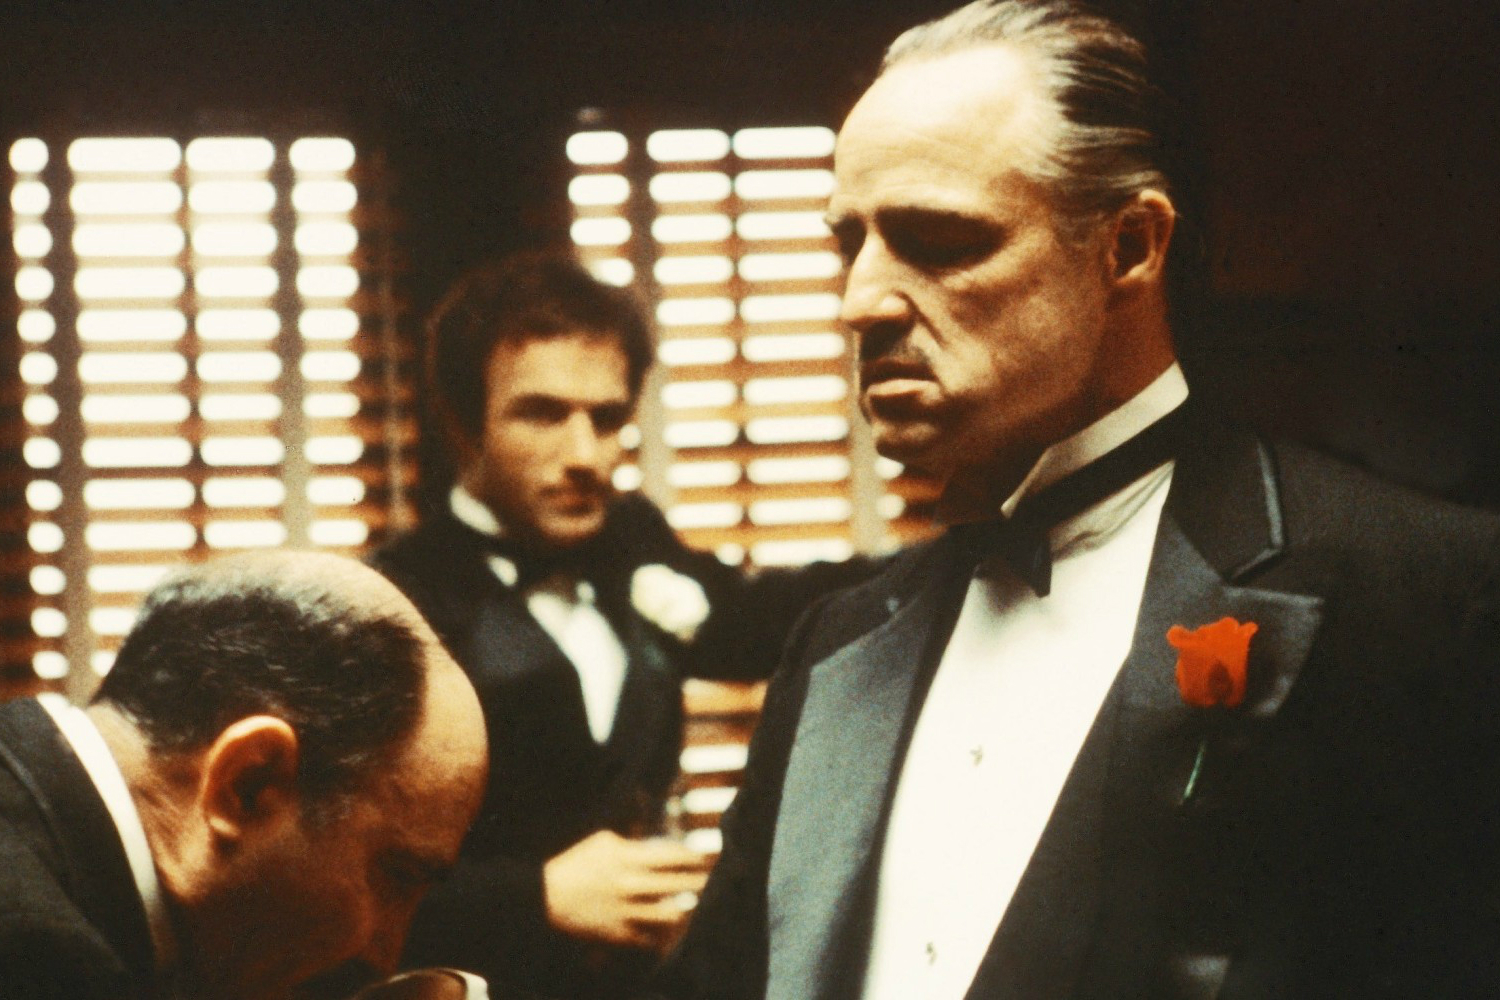 the story of the corleone family in the godfather a film by francis ford coppola Francis ford coppola turns mario puzo's francis ford coppola's 'the godfather' trilogy on stills, storyboards, a godfather timeline and corleone family.